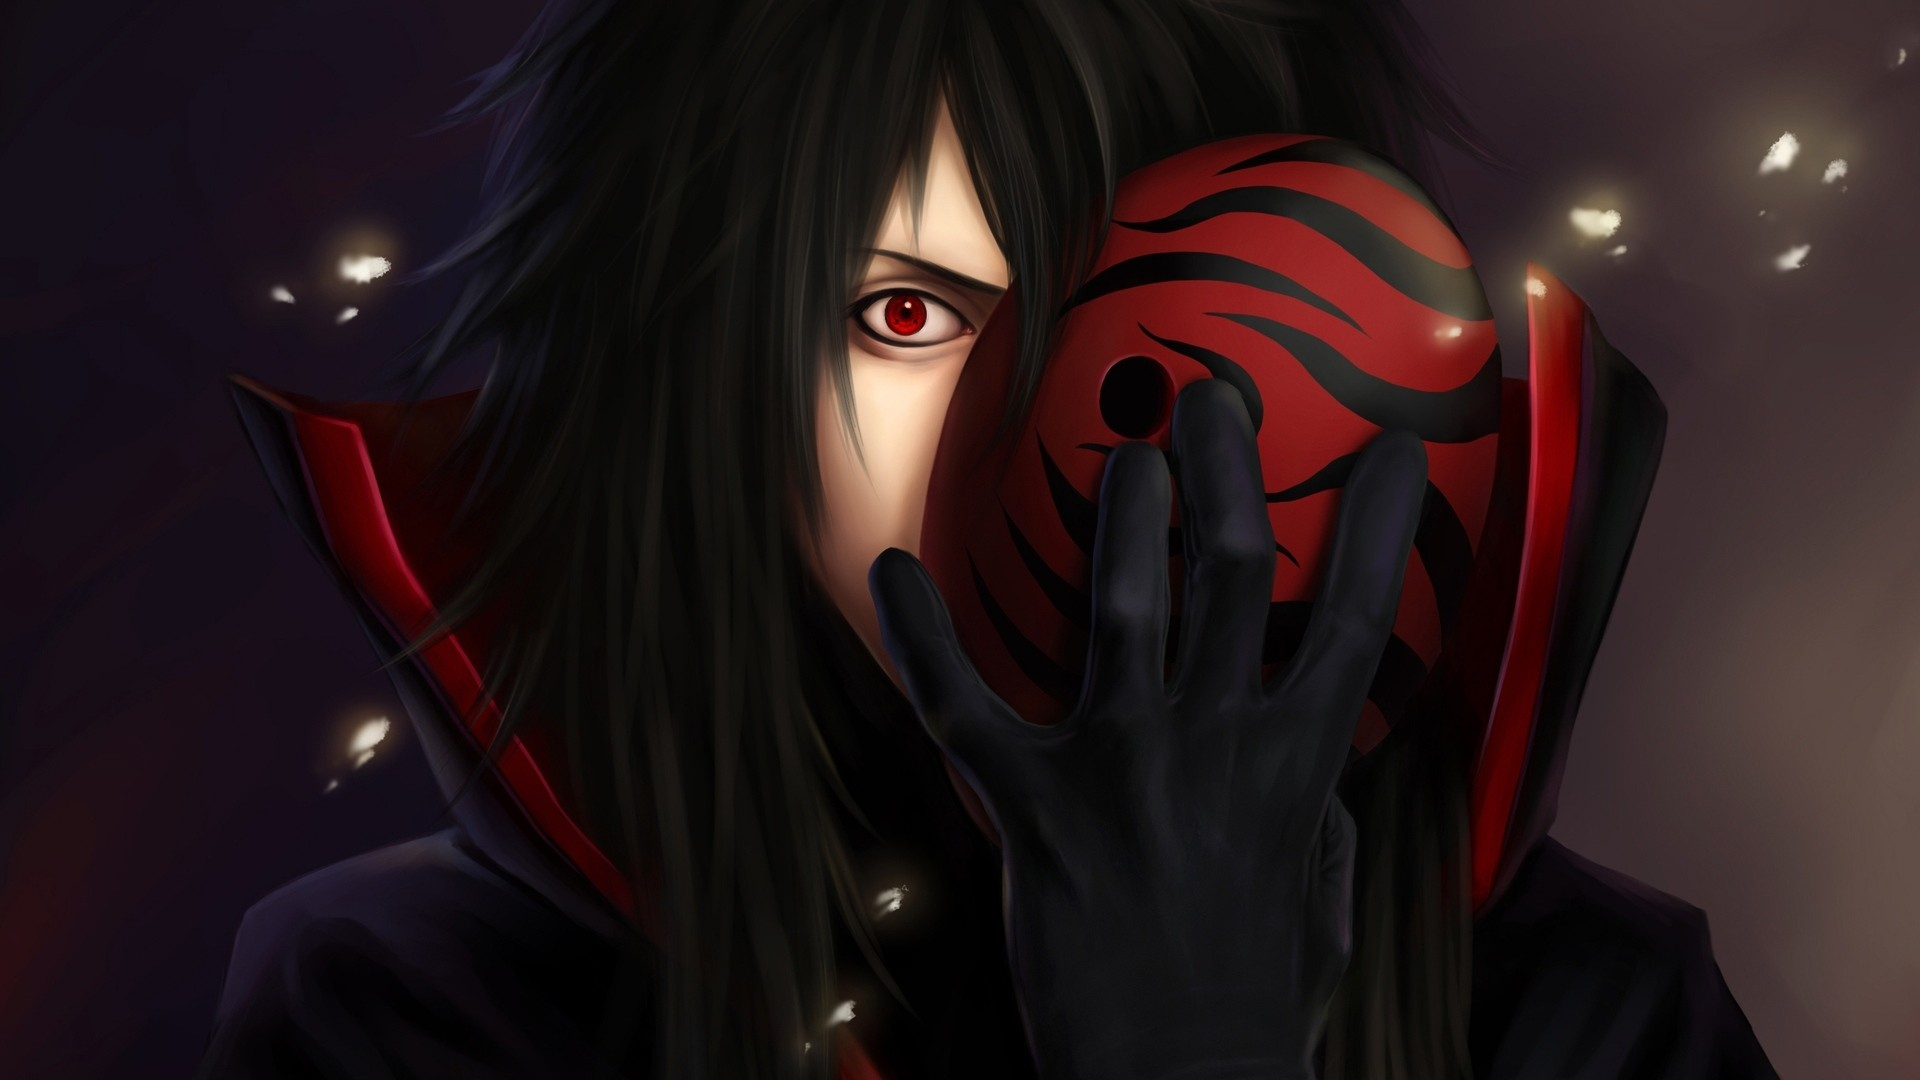 1920x1080  Wallpaper naruto, uchiha, madara, sharingan, man, mask